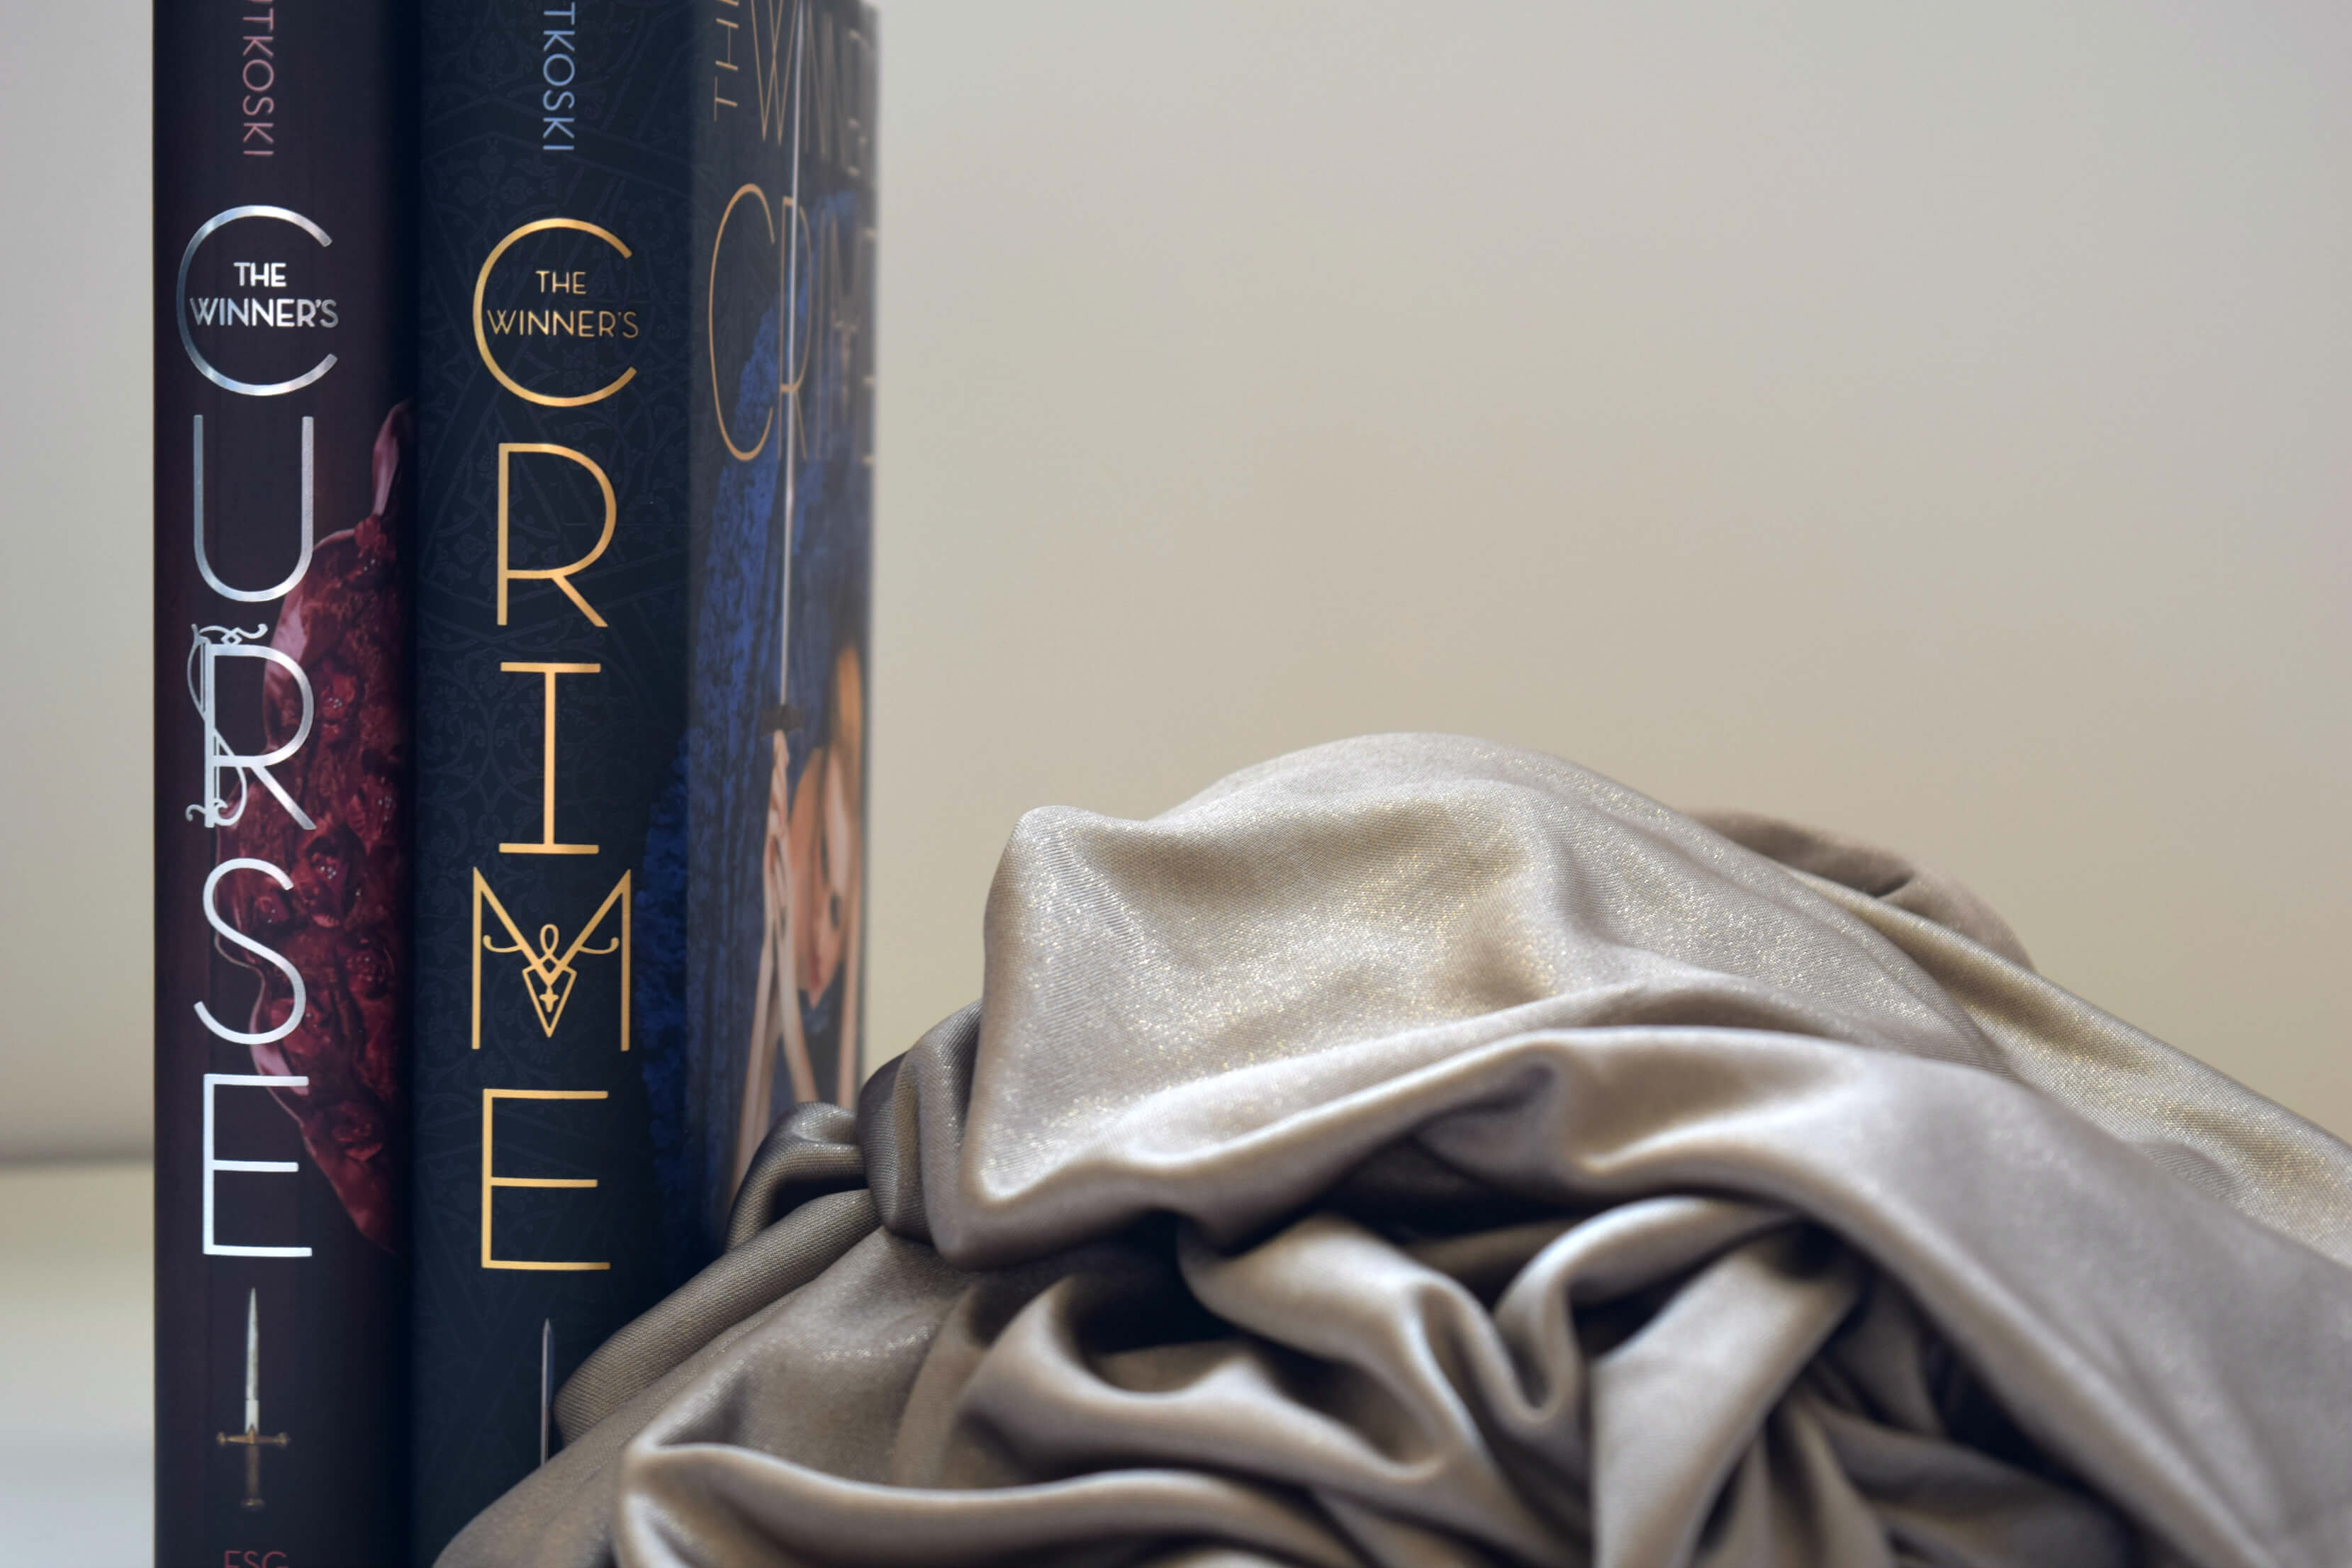 The Winner's Crime by Marie Rutkoski broke my feels. This YA fantasy has such a dangerous world that will leave you on the edge of your seat. Kestrel + Arin = <3 <3 <3